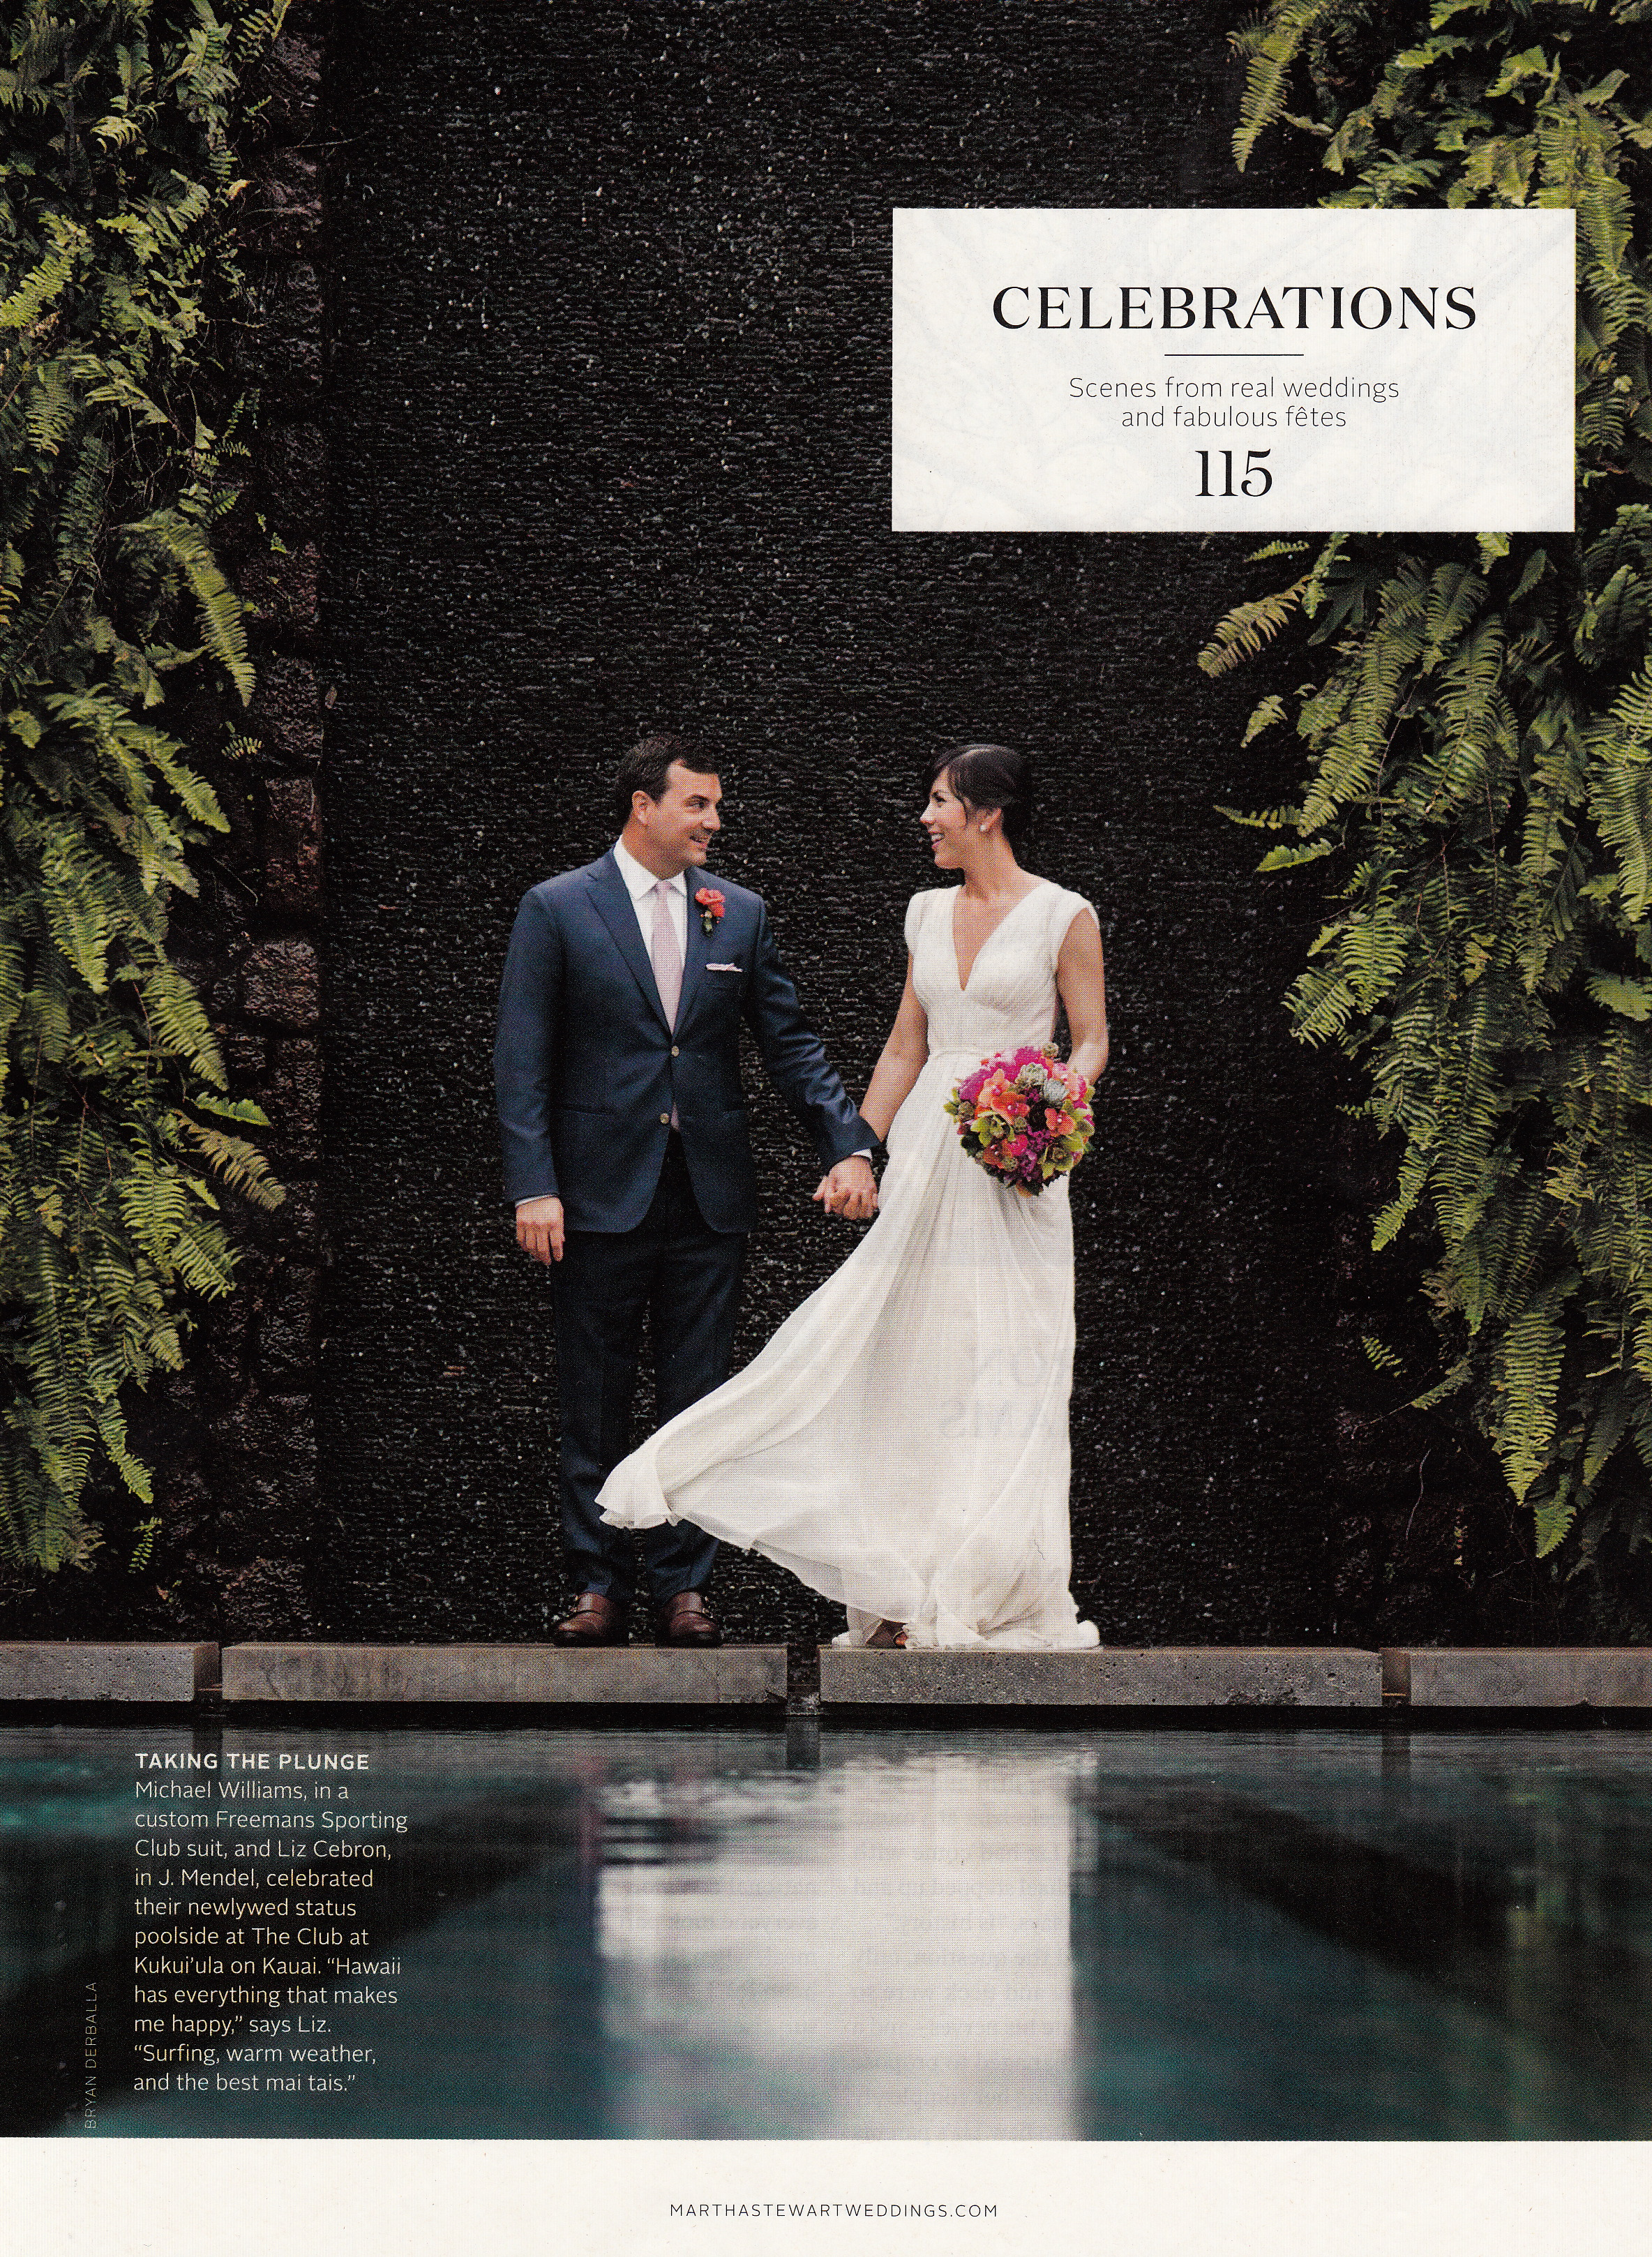 Mira Mira Events Kauai featured in Martha Stewart Weddings Style Issue